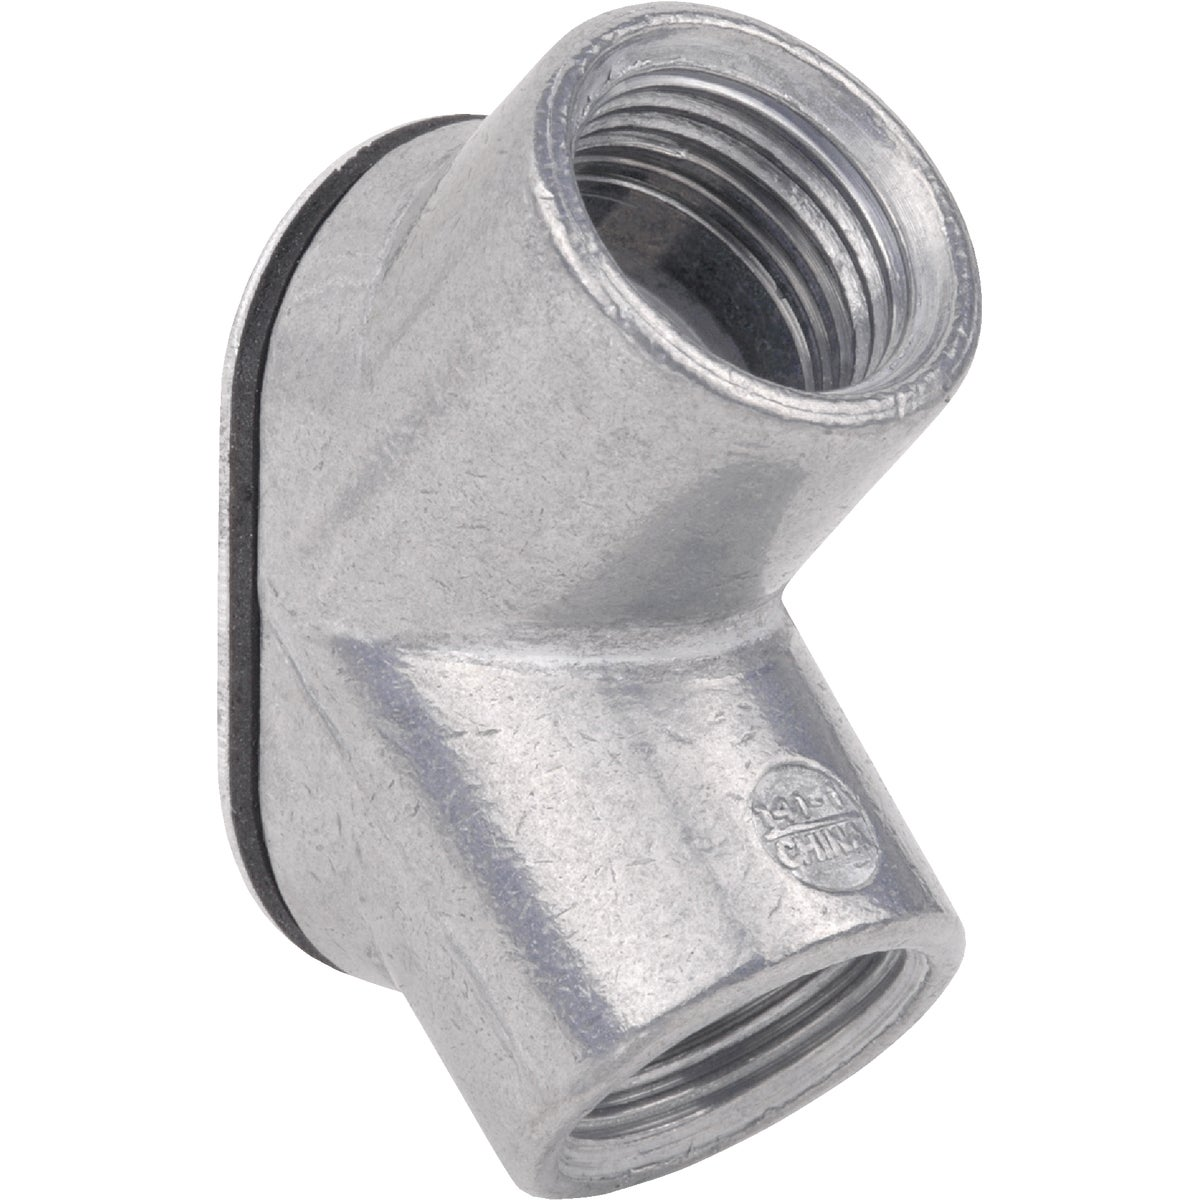 "3/4"" PULL ELBOW - LG14121 by Thomas & Betts"